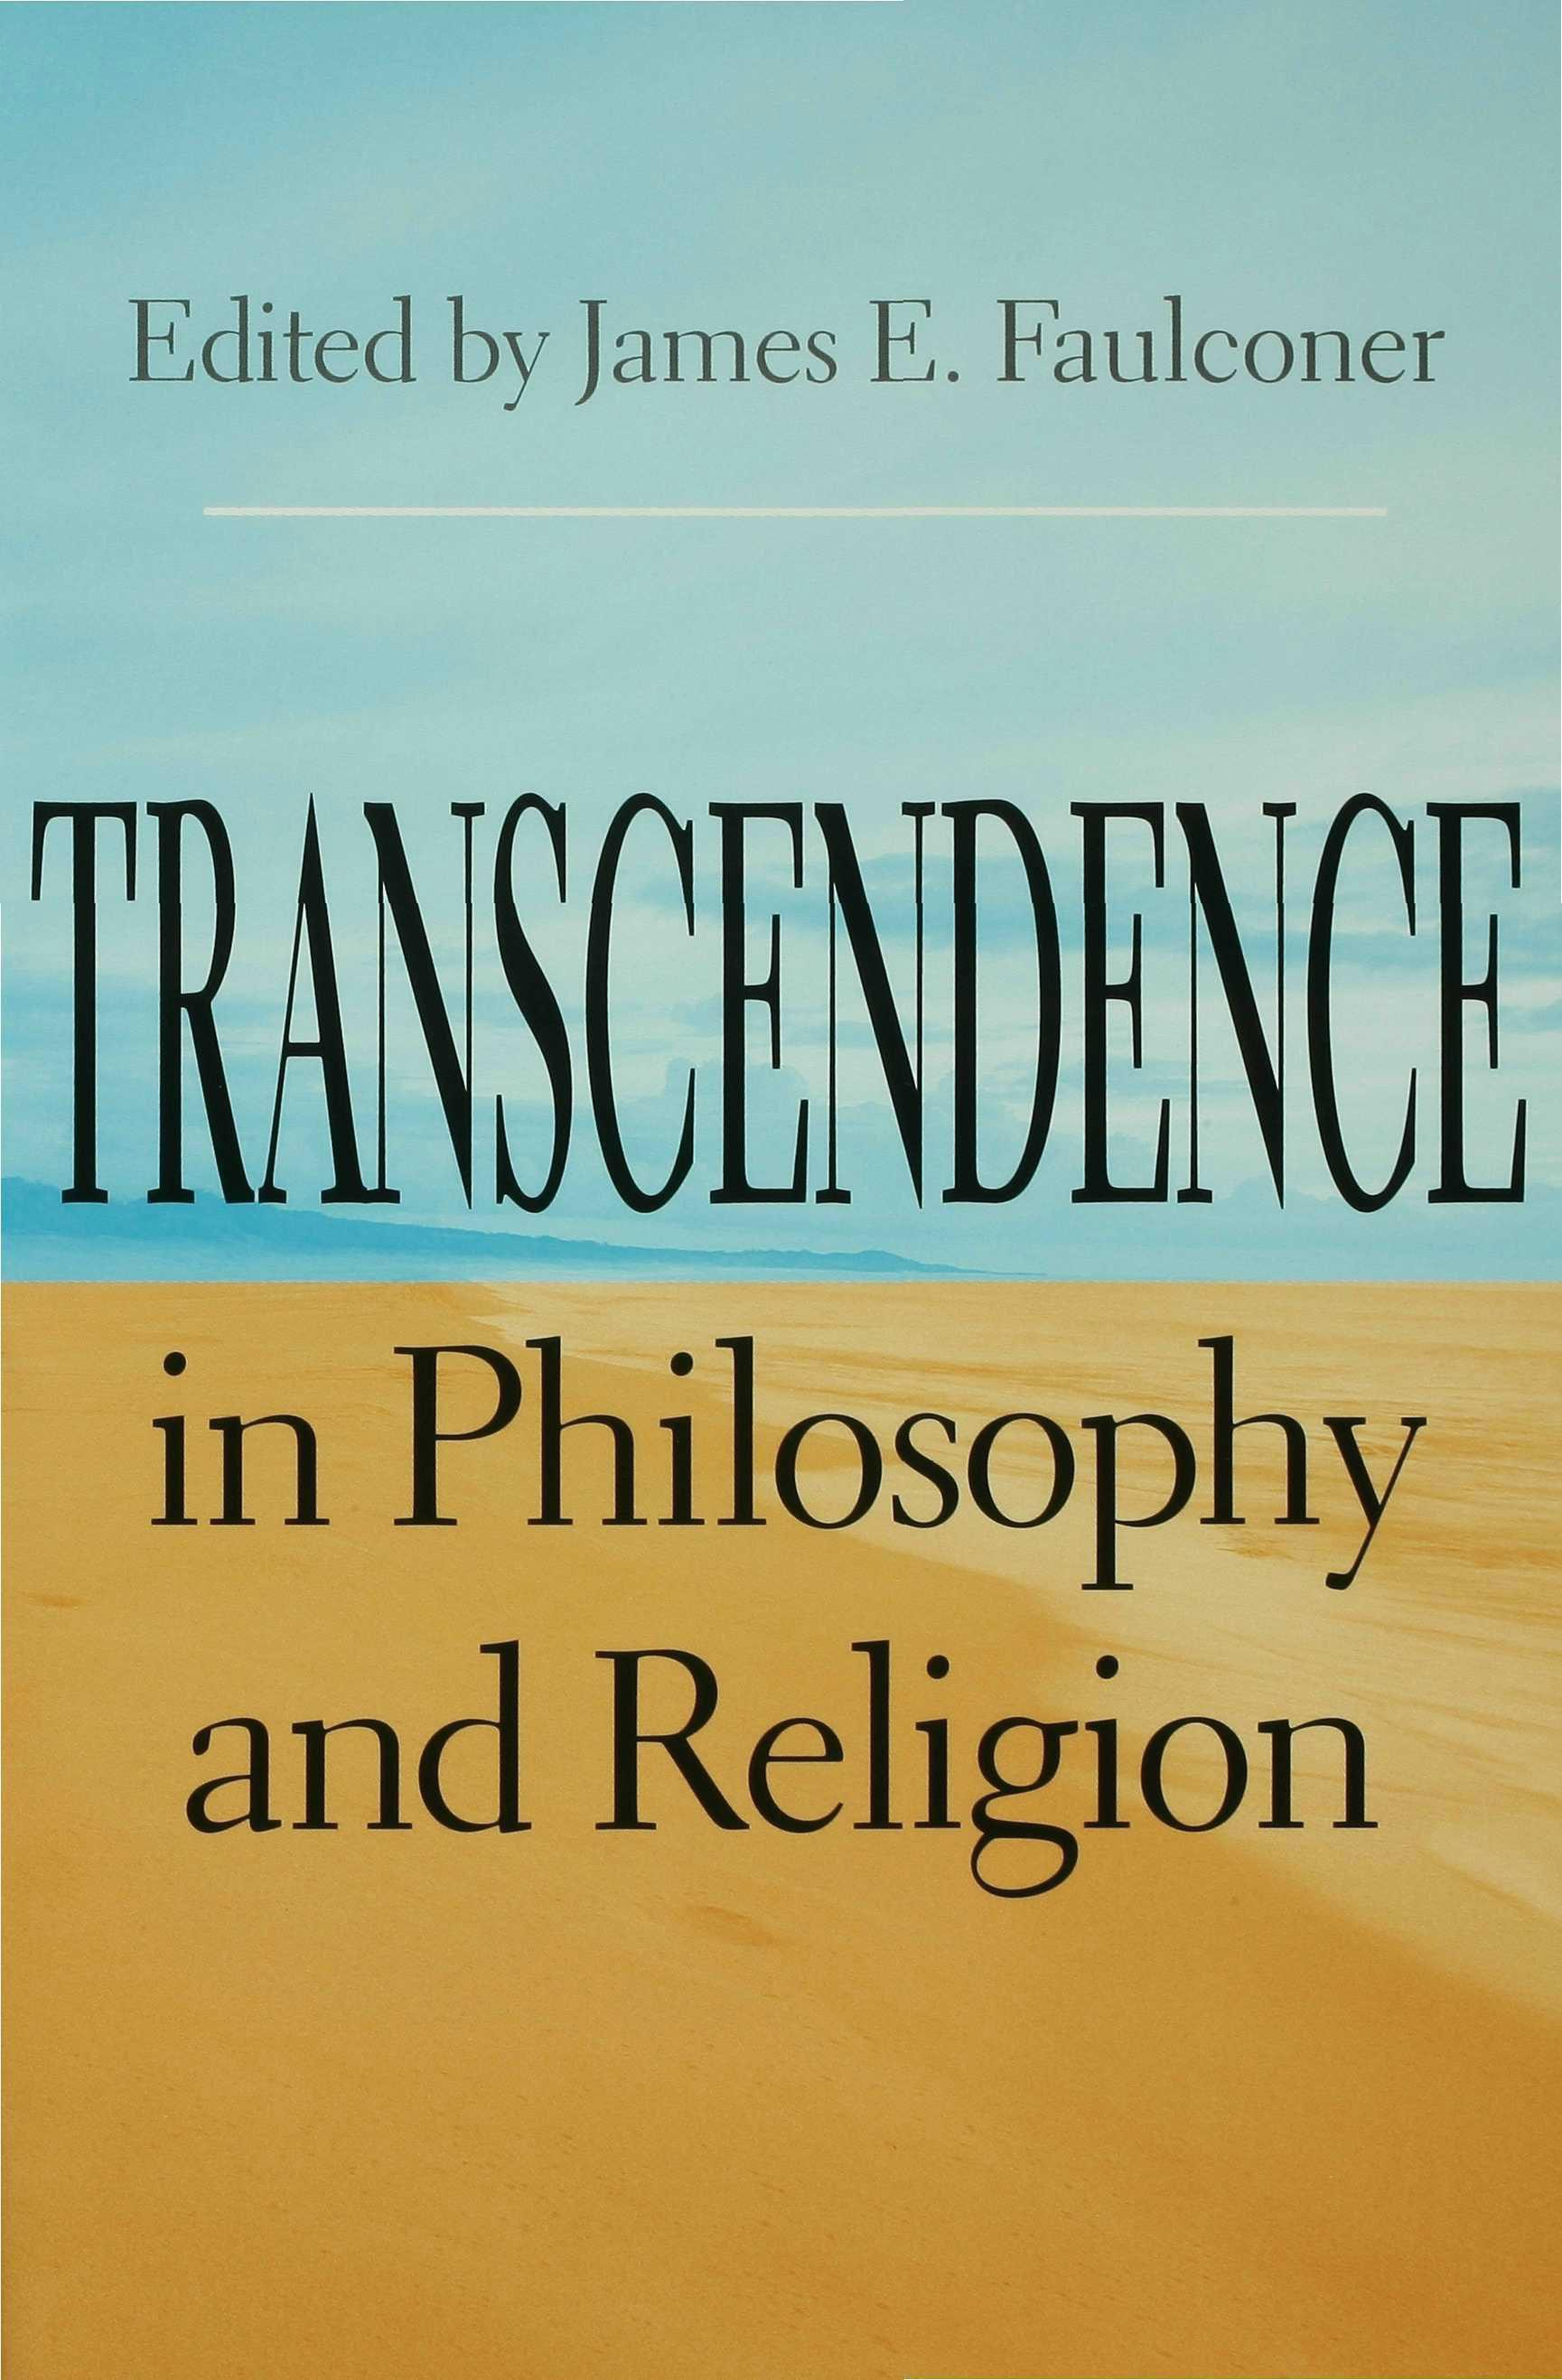 Transcendence in Philosophy and Religion